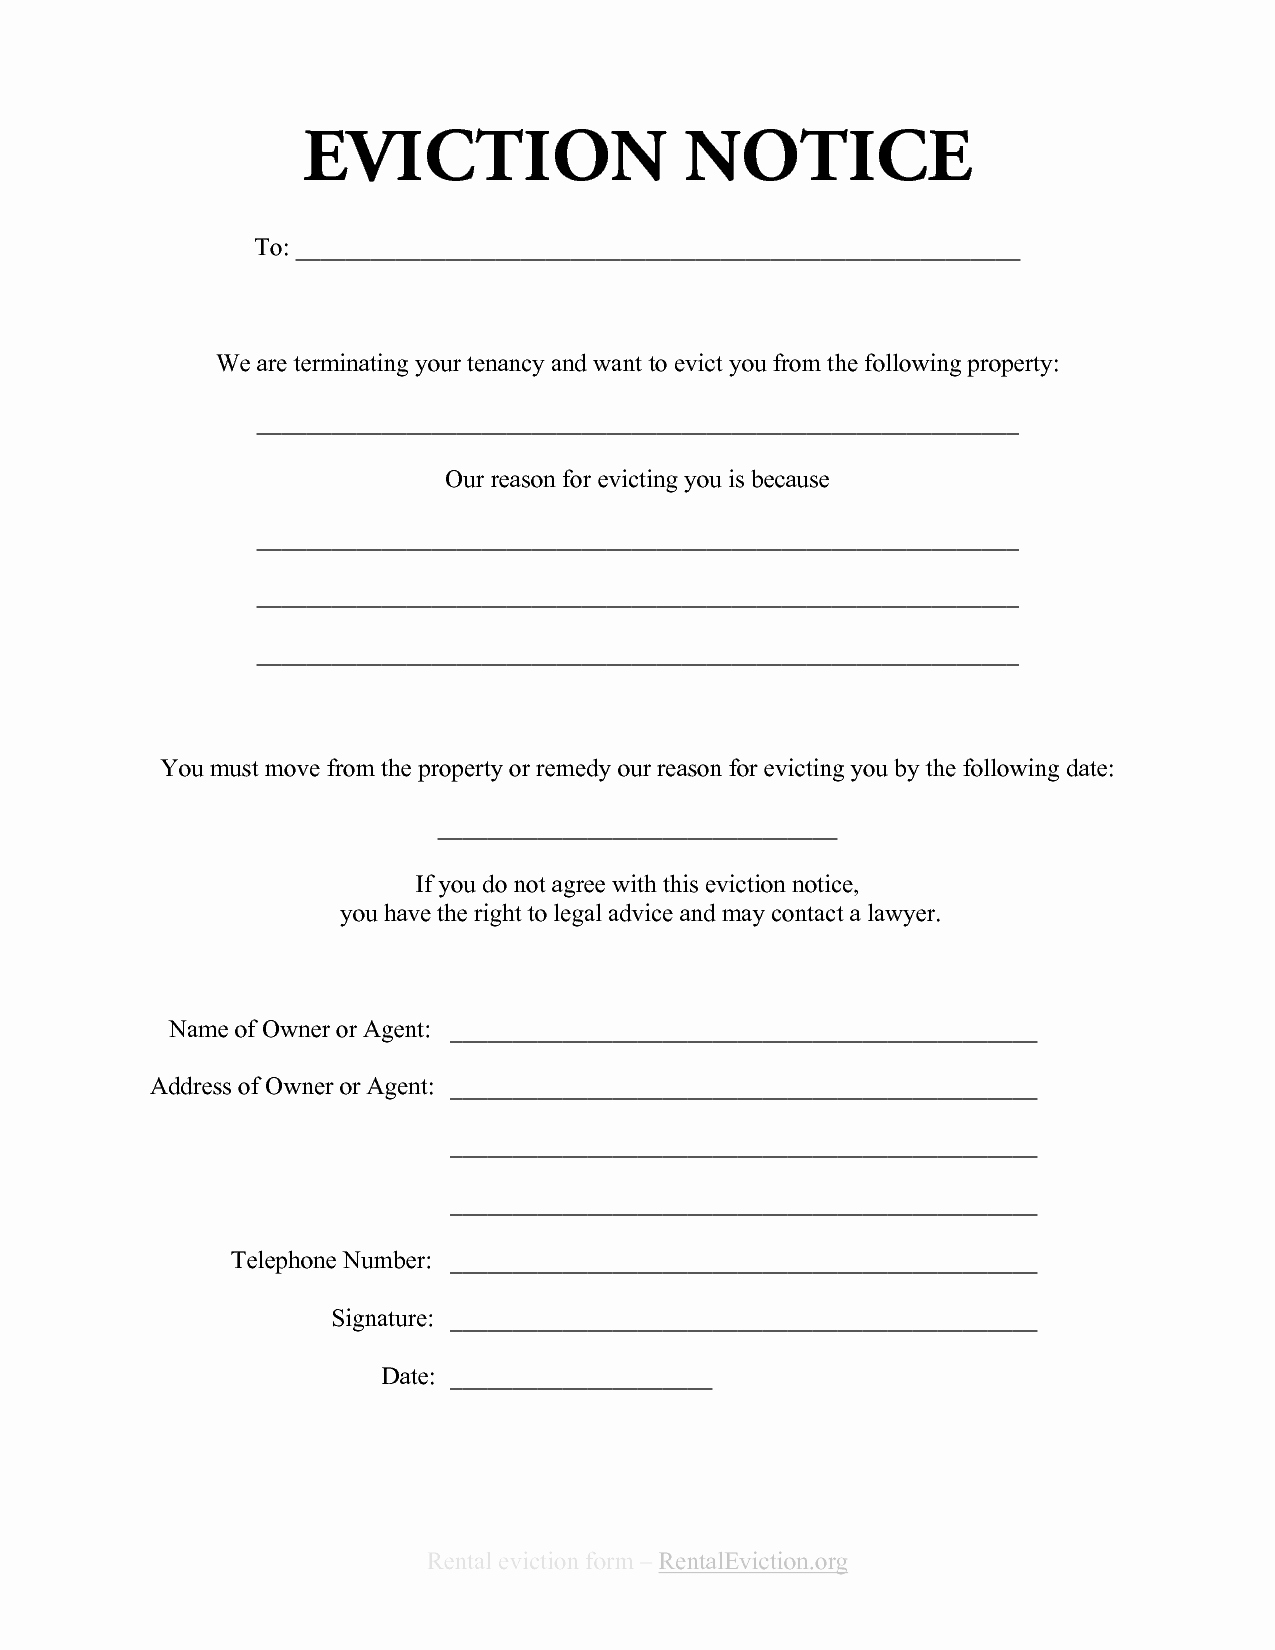 Template for Eviction Notice Fresh Free Print Out Eviction Notices